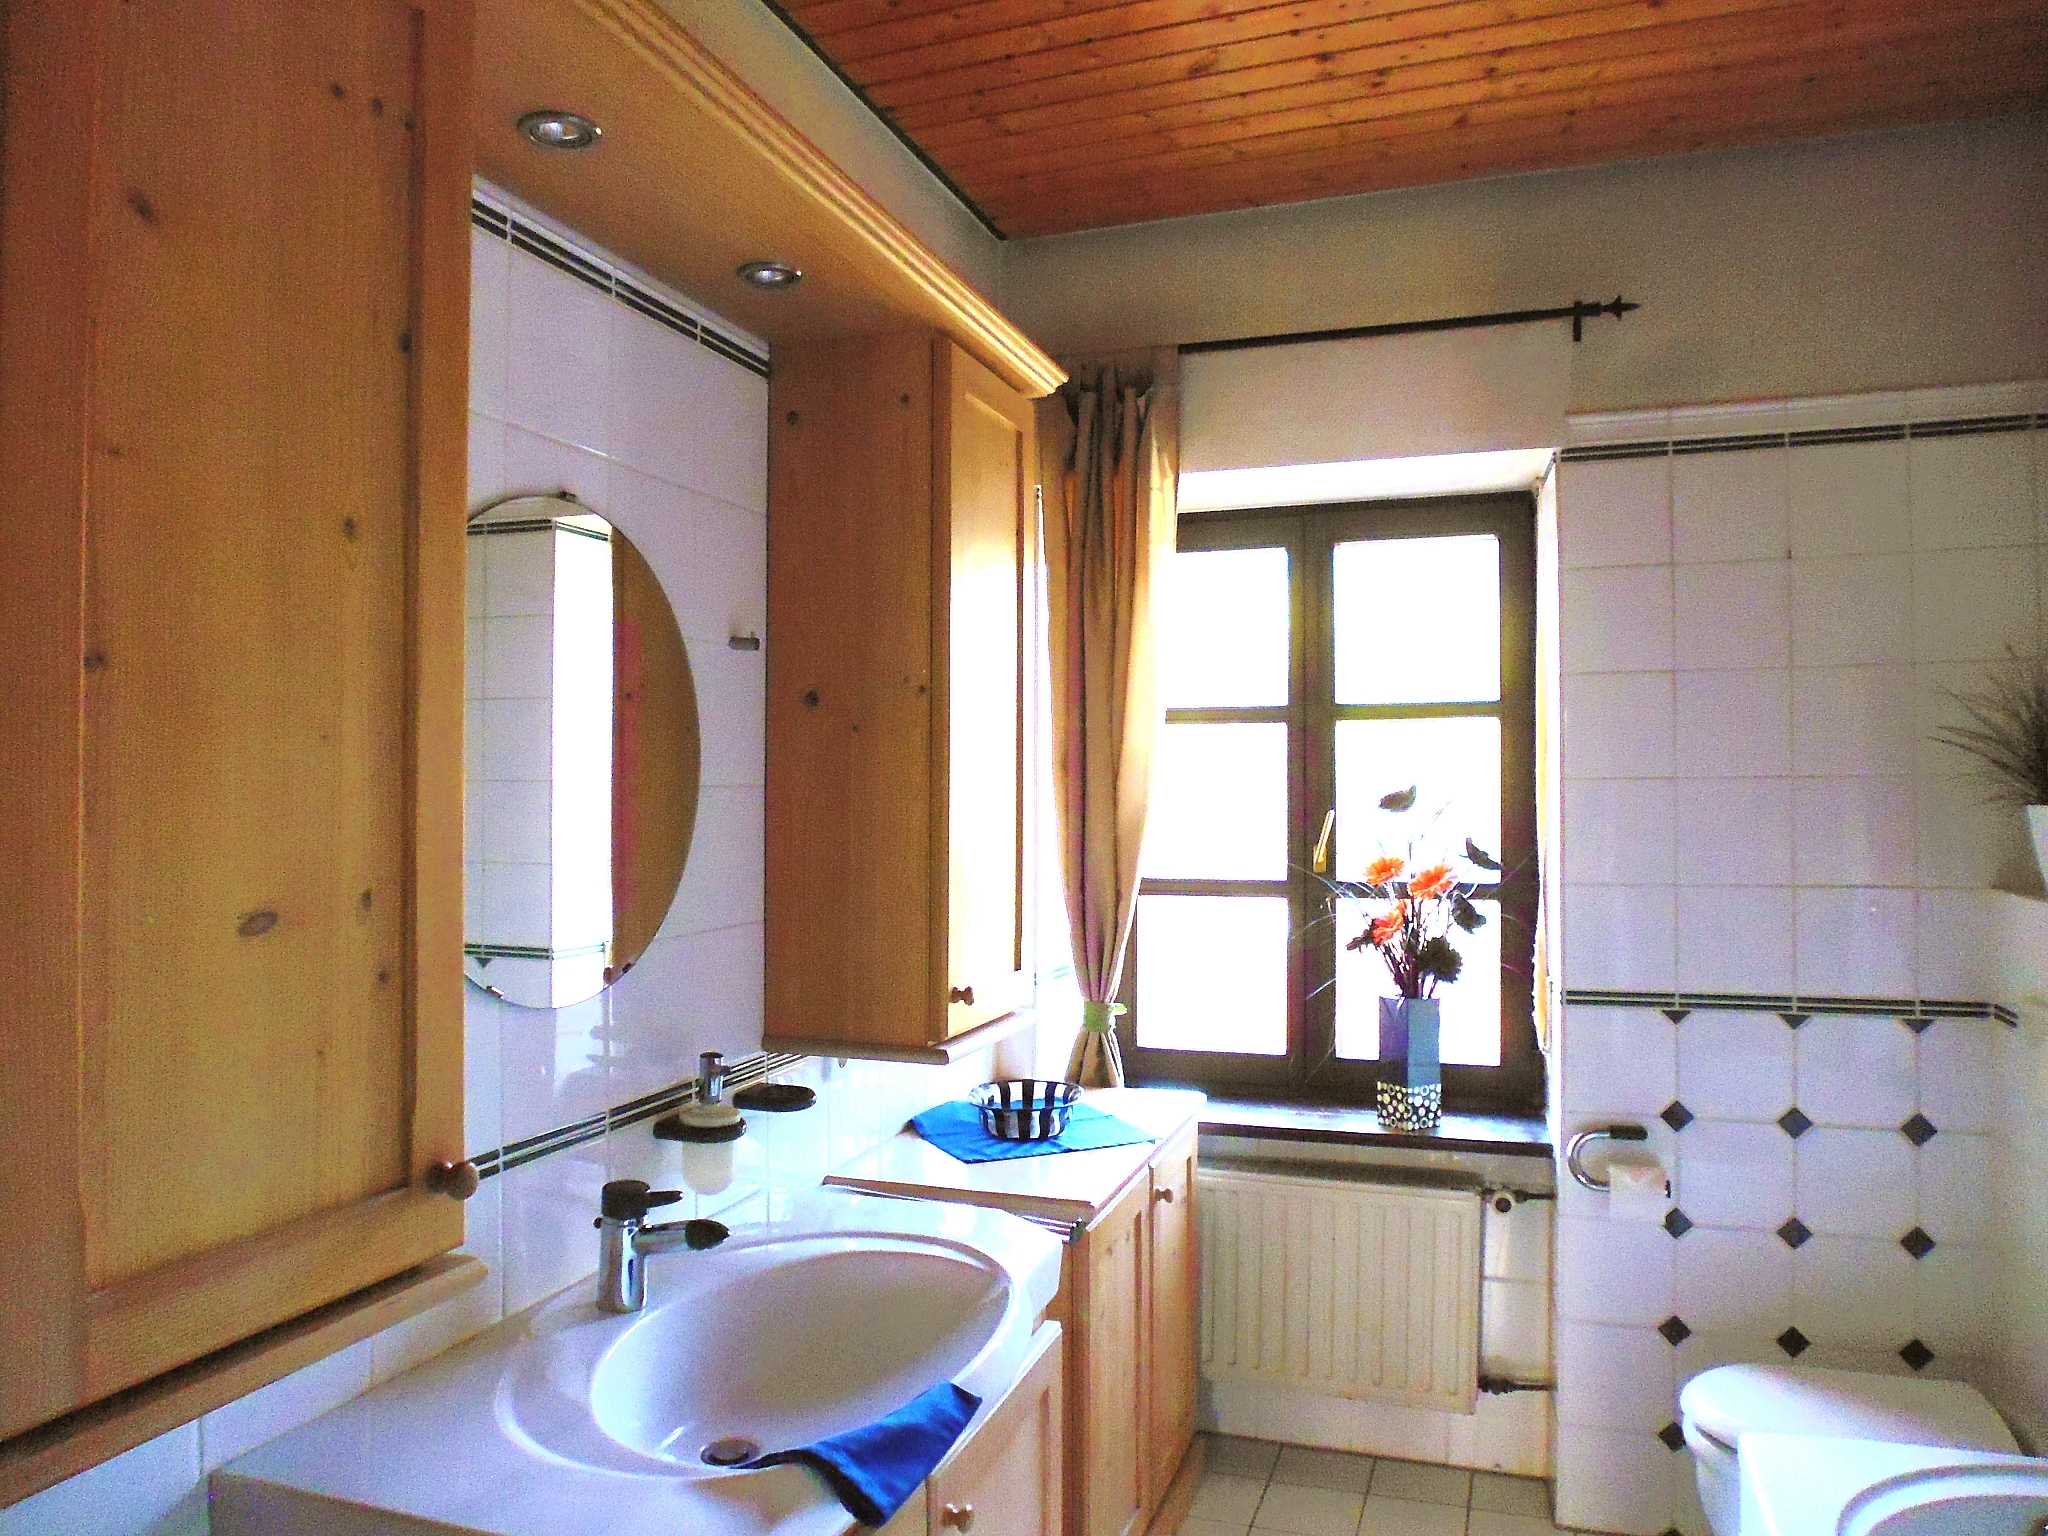 The largest bathroom features a bathtub and shower